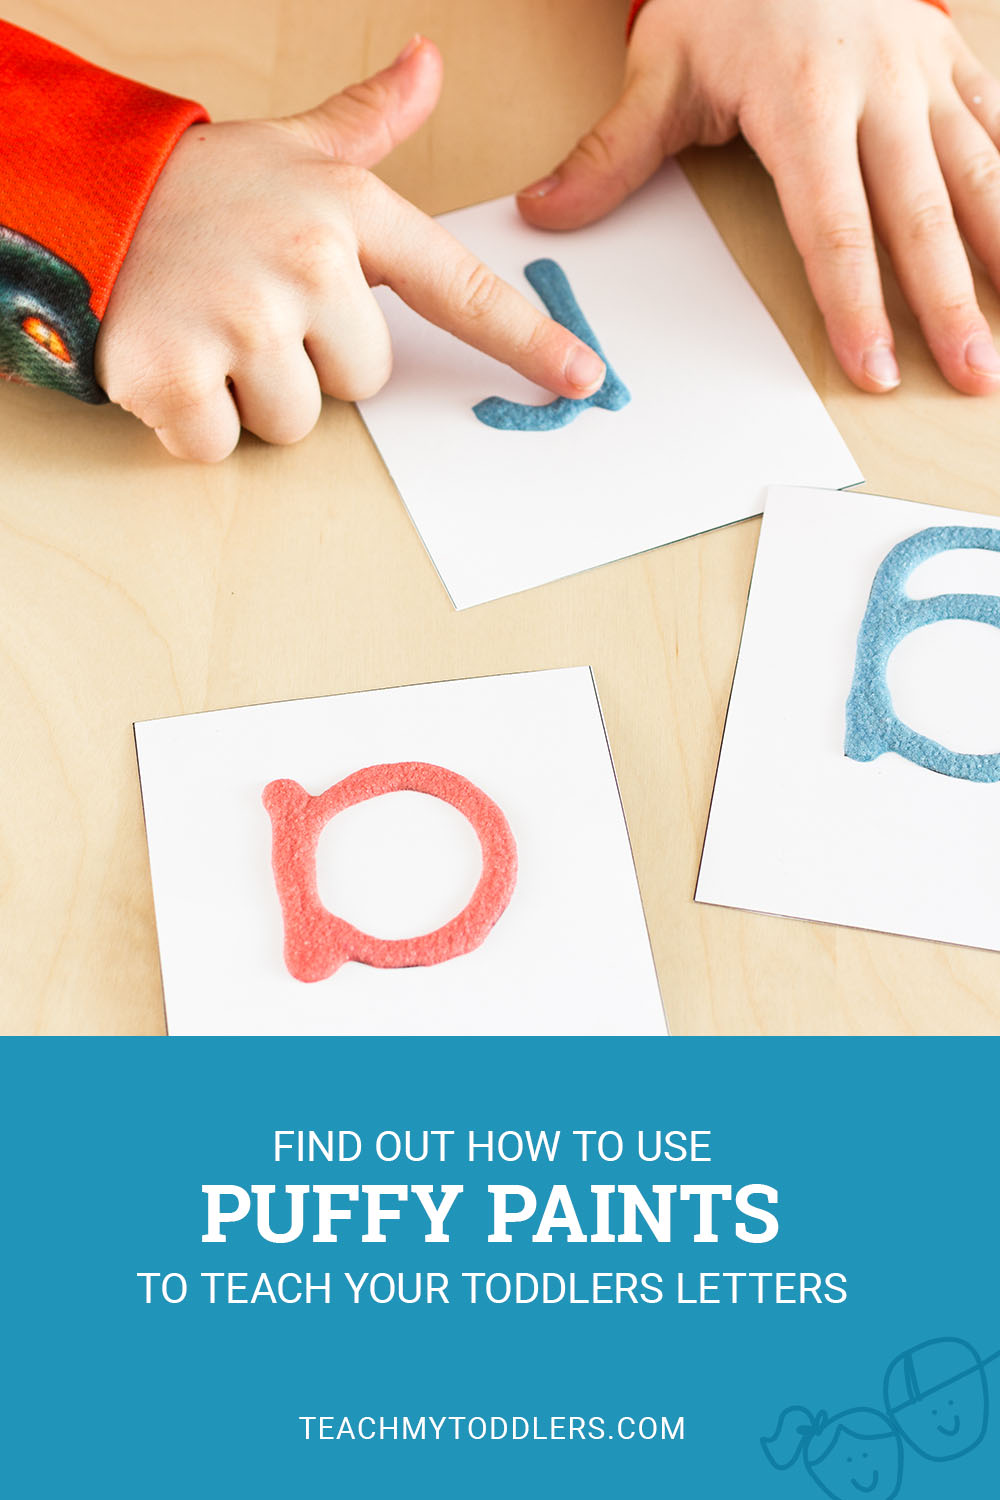 Find out how to use puffy paints to teach toddlers letters